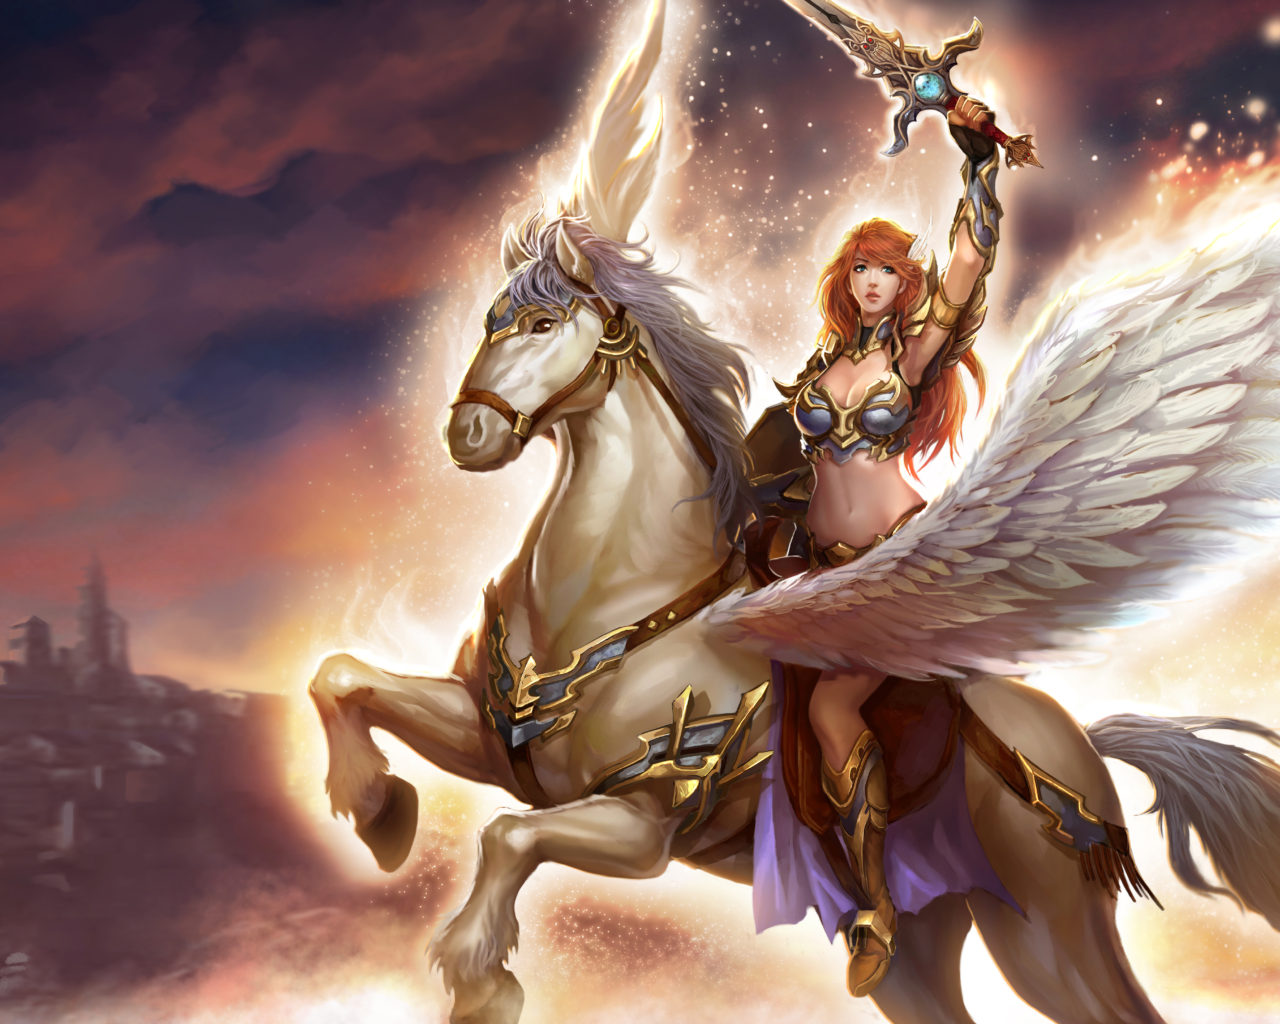 Beautiful Girl Full Screen Wallpaper Angel Warrior Fantasy Art Girl Sword Game White Horse